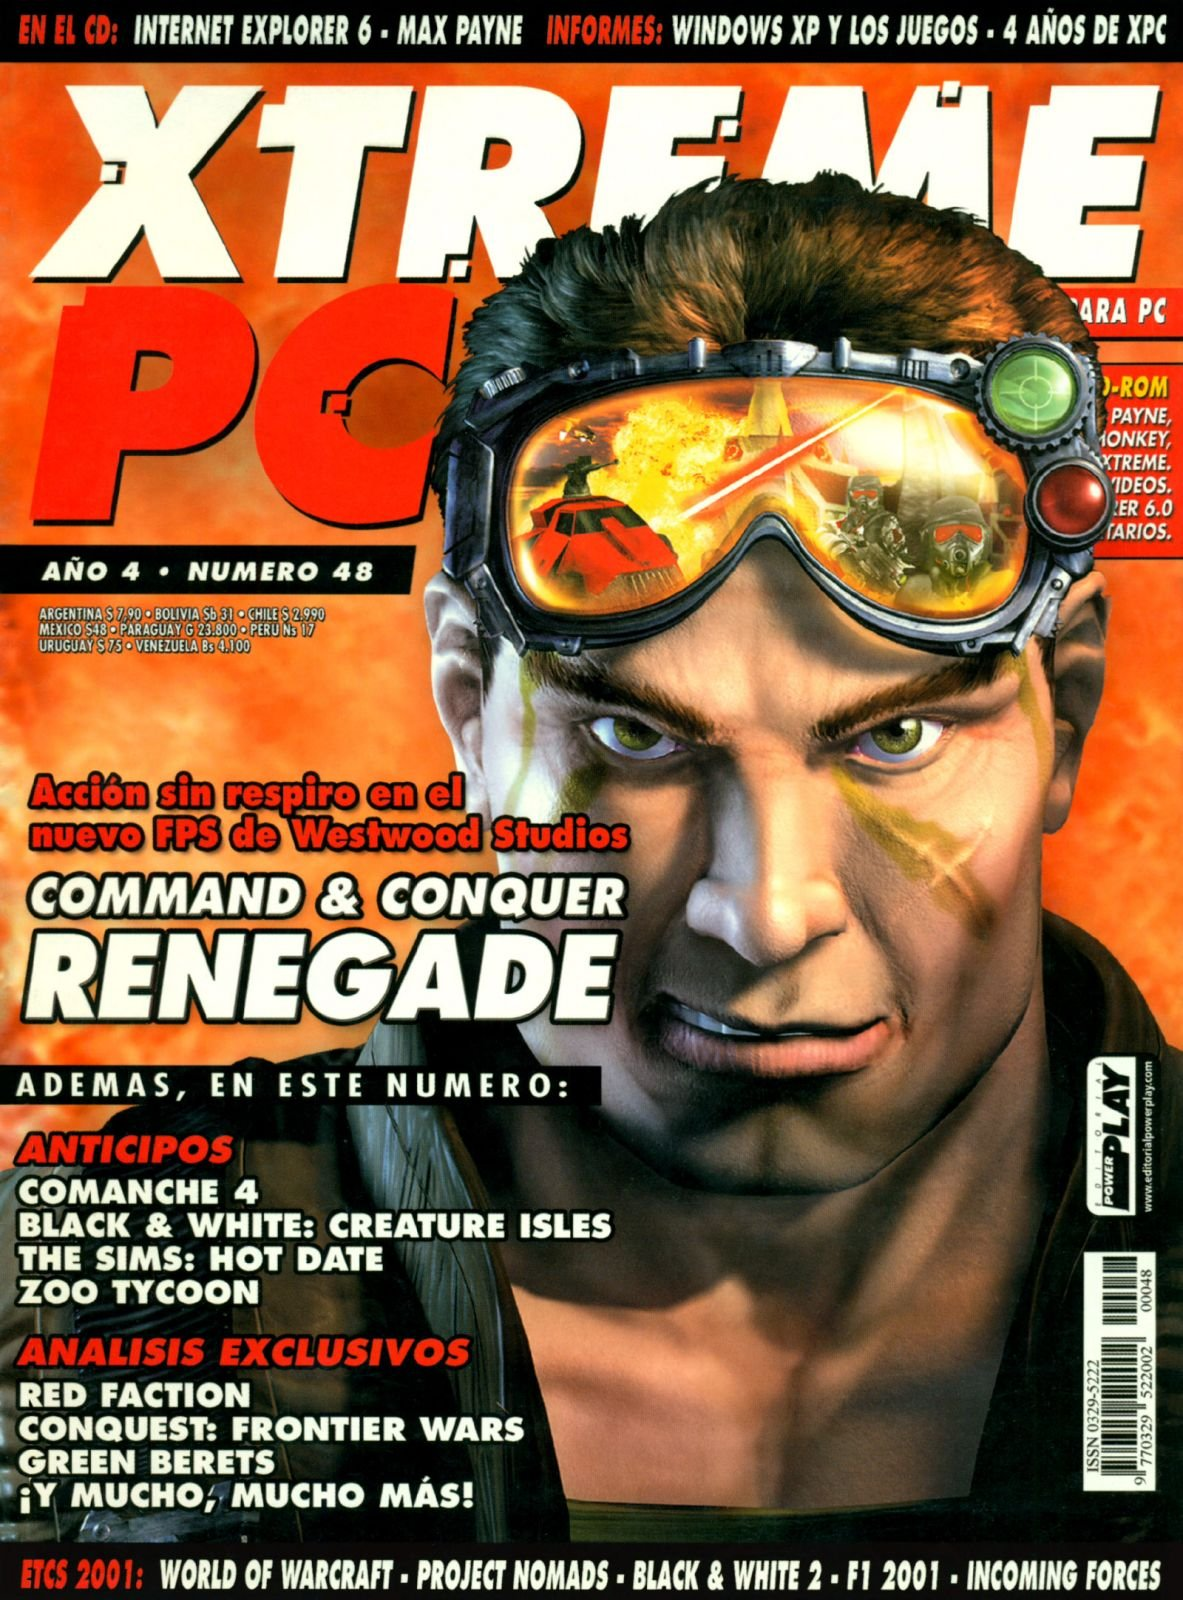 Xtreme PC 48 October 2001